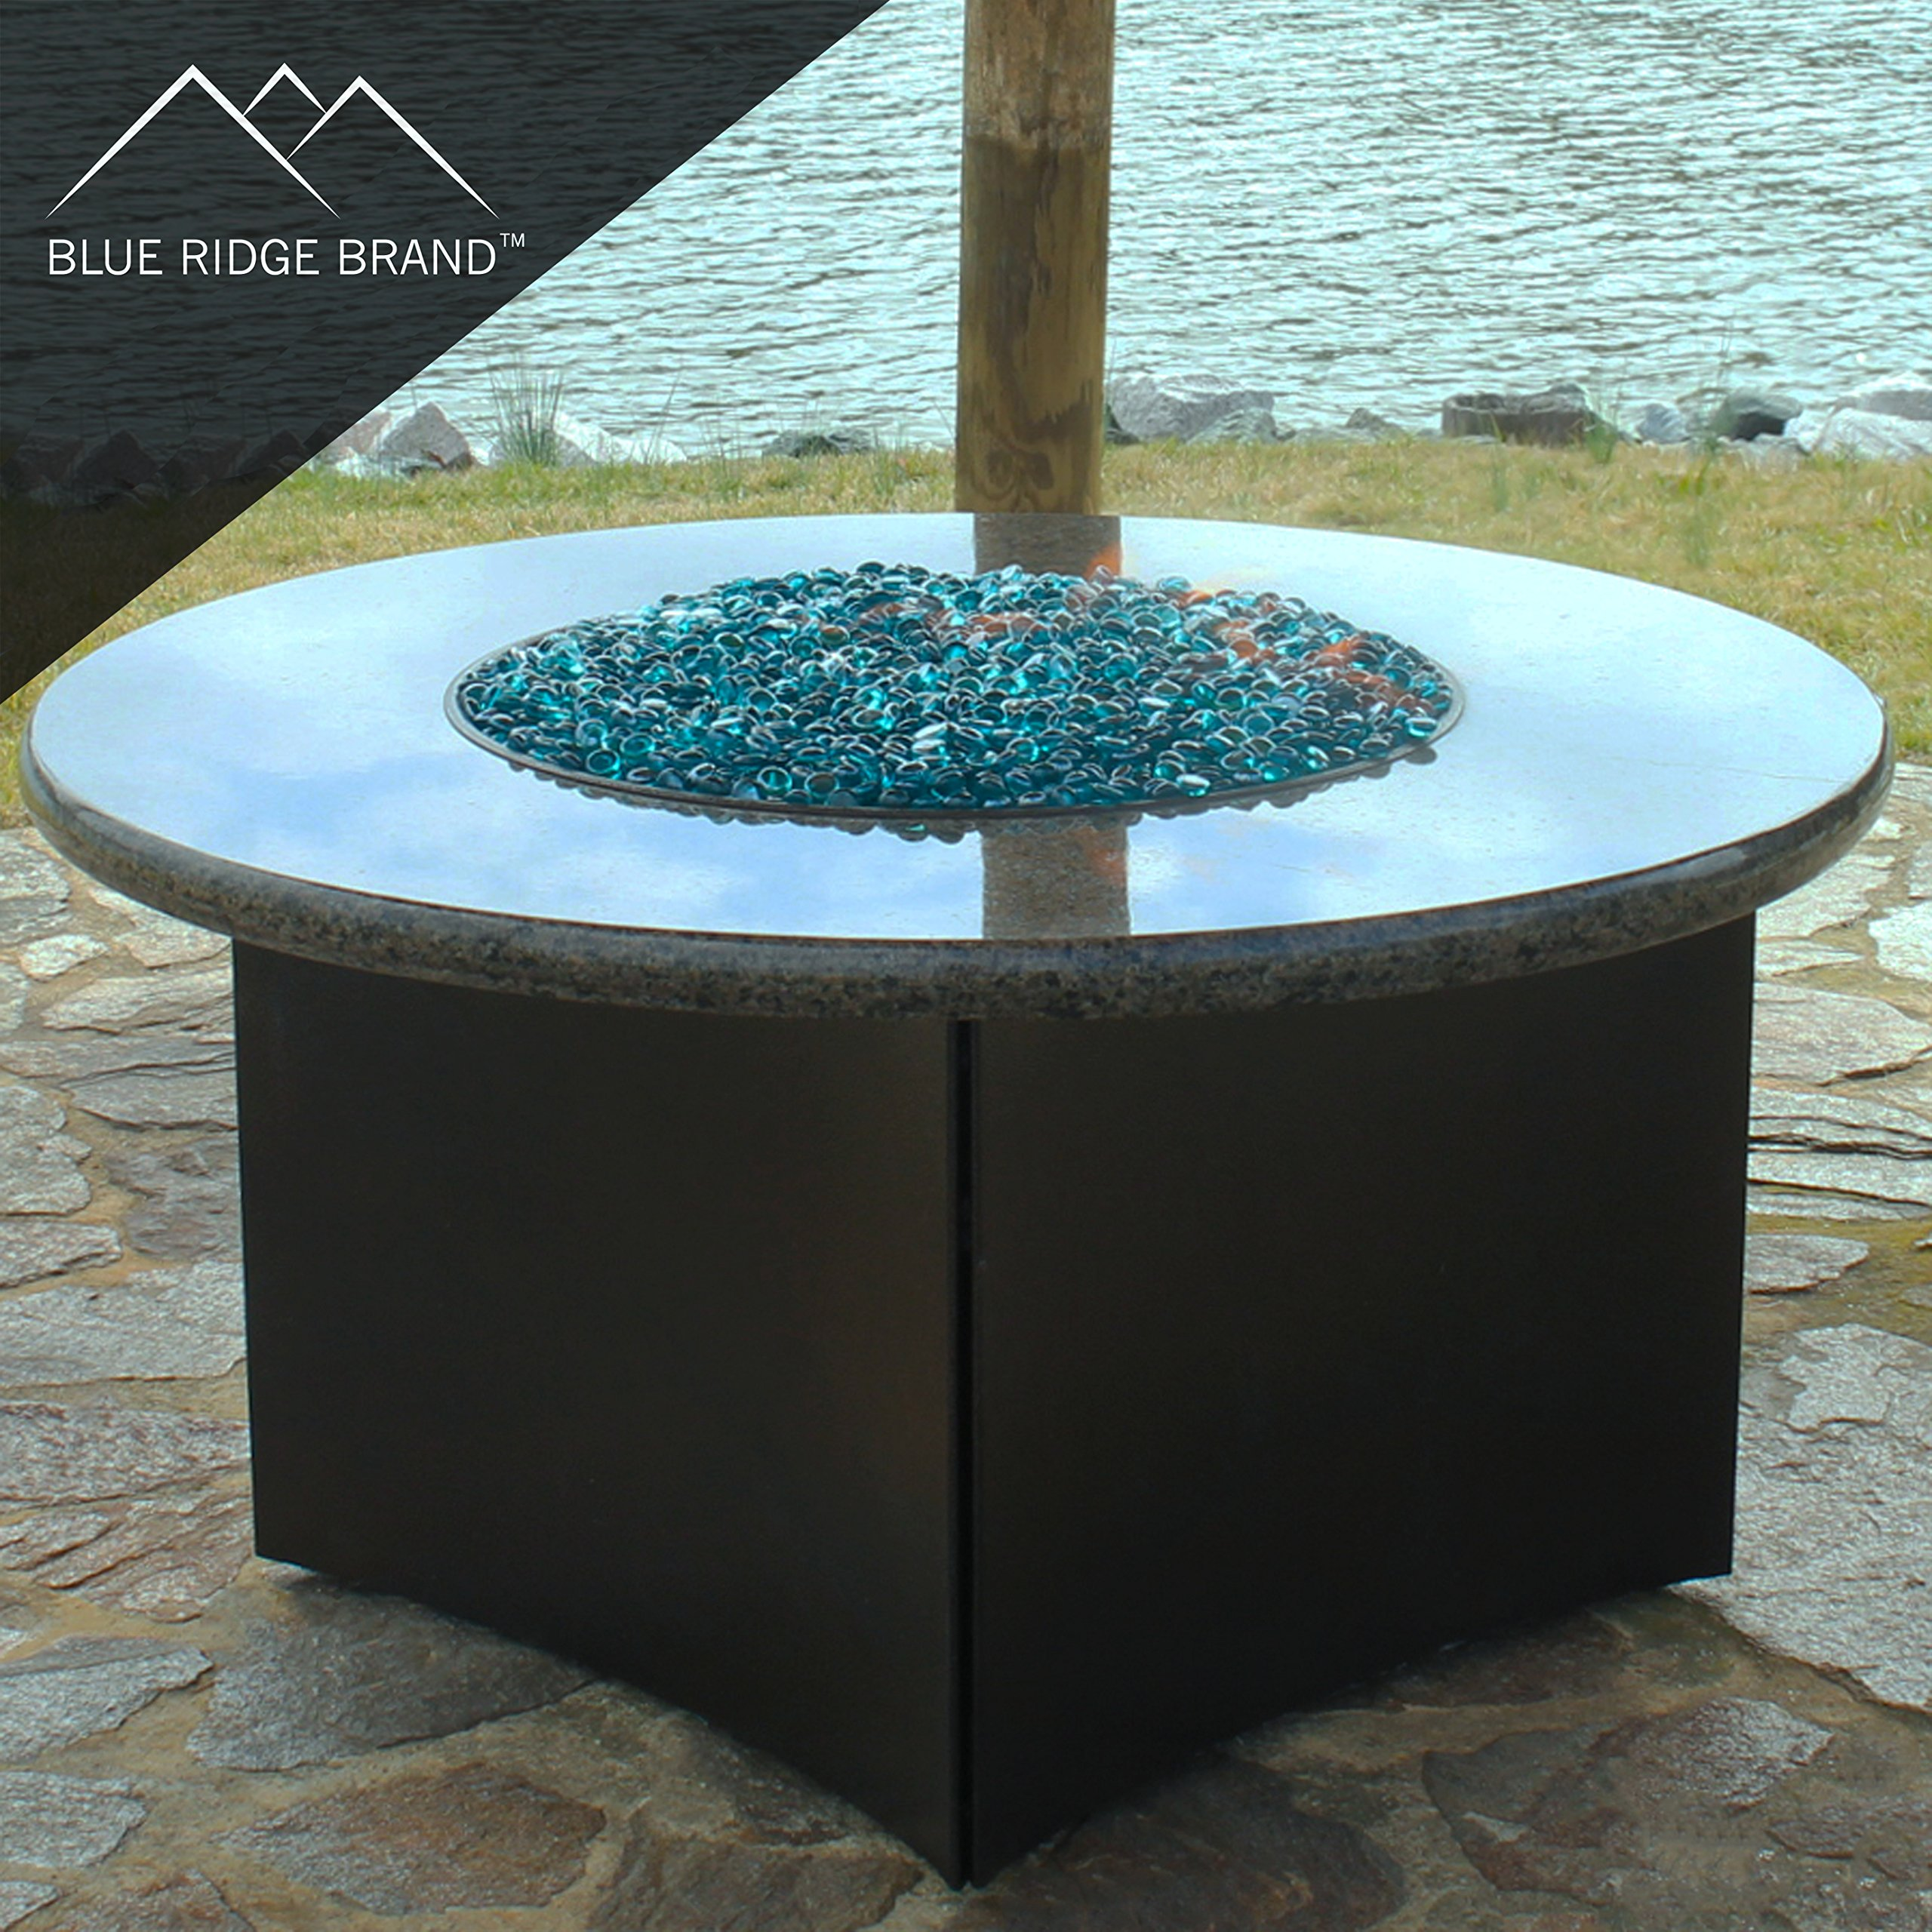 Blue Ridge Brand trade; Aqua Reflective Fire Glass Cubes - 20-Pound Professional Grade Fire Pit Glass - 3/4'' Reflective Glass for Fire Pit and Landscaping by Blue Ridge Brand (Image #5)